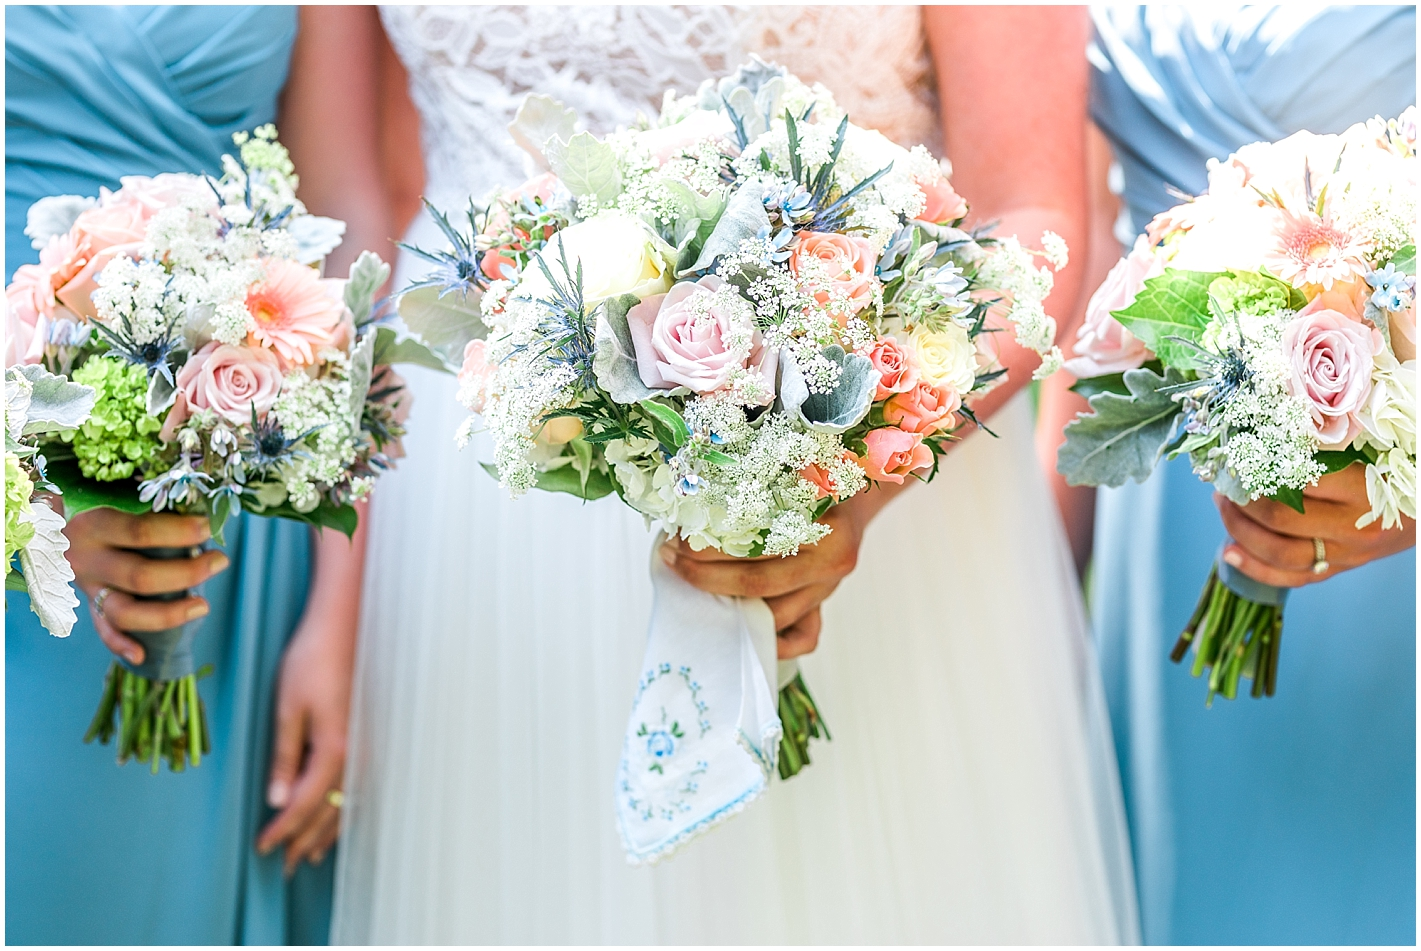 Peach, Blue and White bouquets Photo By Alyssa Parker Photography